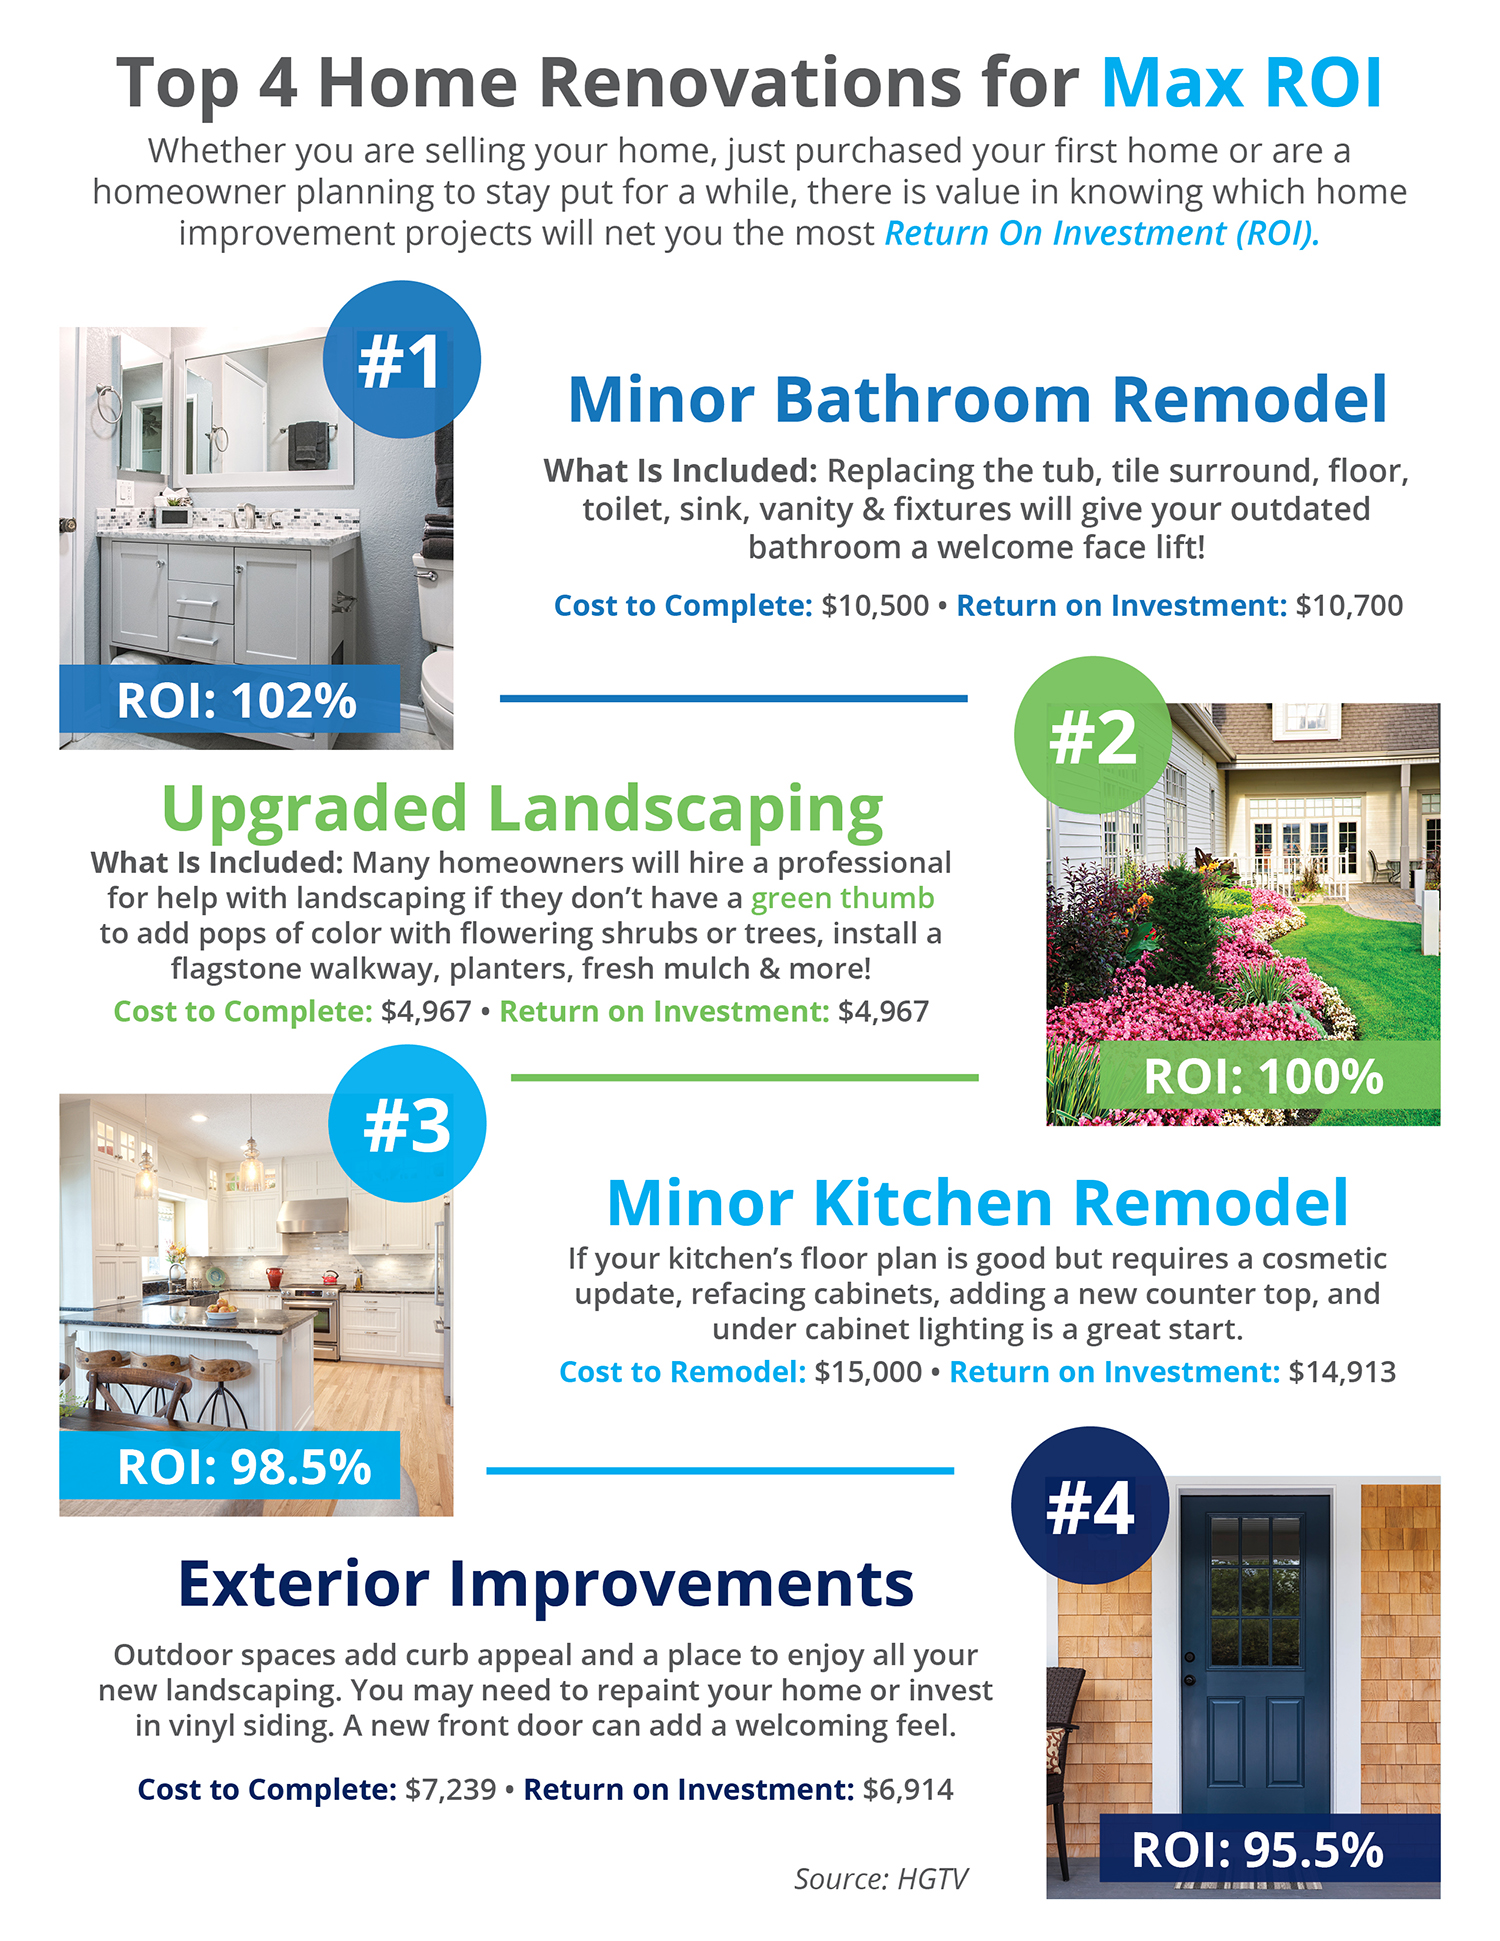 Top 4 Home Renovations for Max ROI [INFOGRAPHIC] | Simplifying The Market